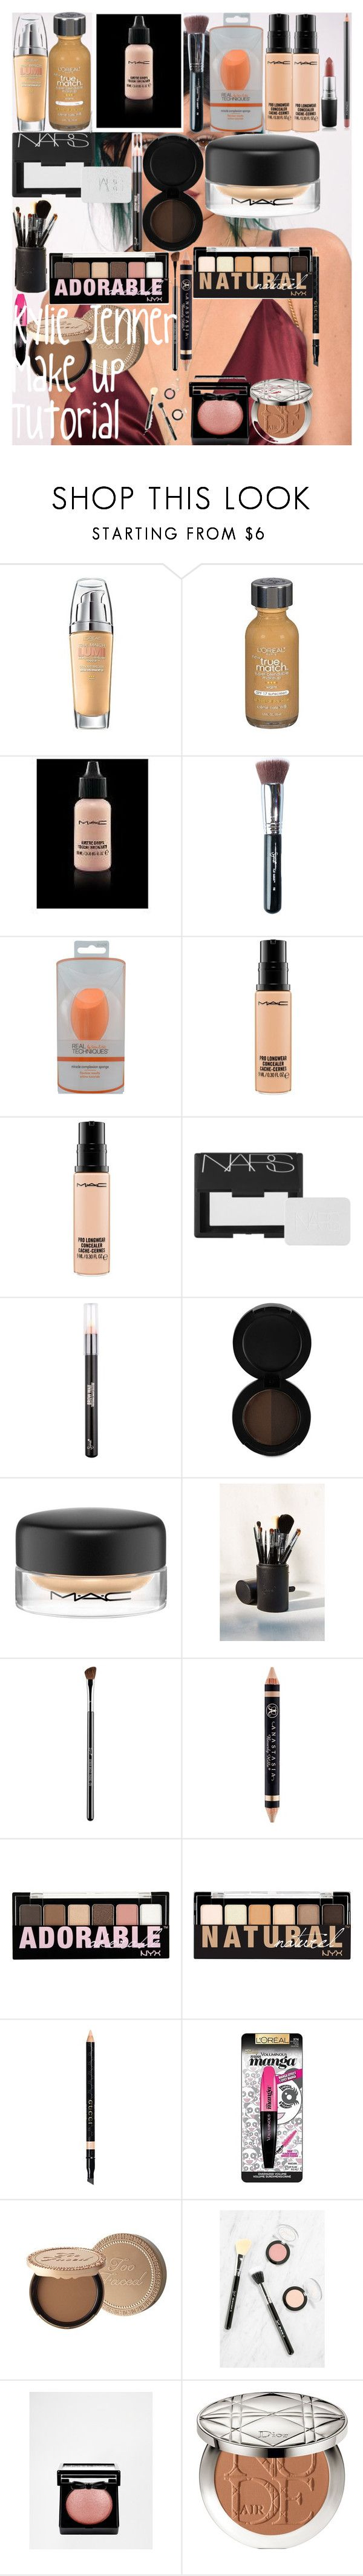 """Kylie Jenner Makeup Tutorial"" by oroartye-1 on Polyvore featuring beauty, L'Oréal Paris, MAC Cosmetics, Sigma, NARS Cosmetics, Anastasia Beverly Hills, NYX, Gucci, Too Faced Cosmetics and Christian Dior"